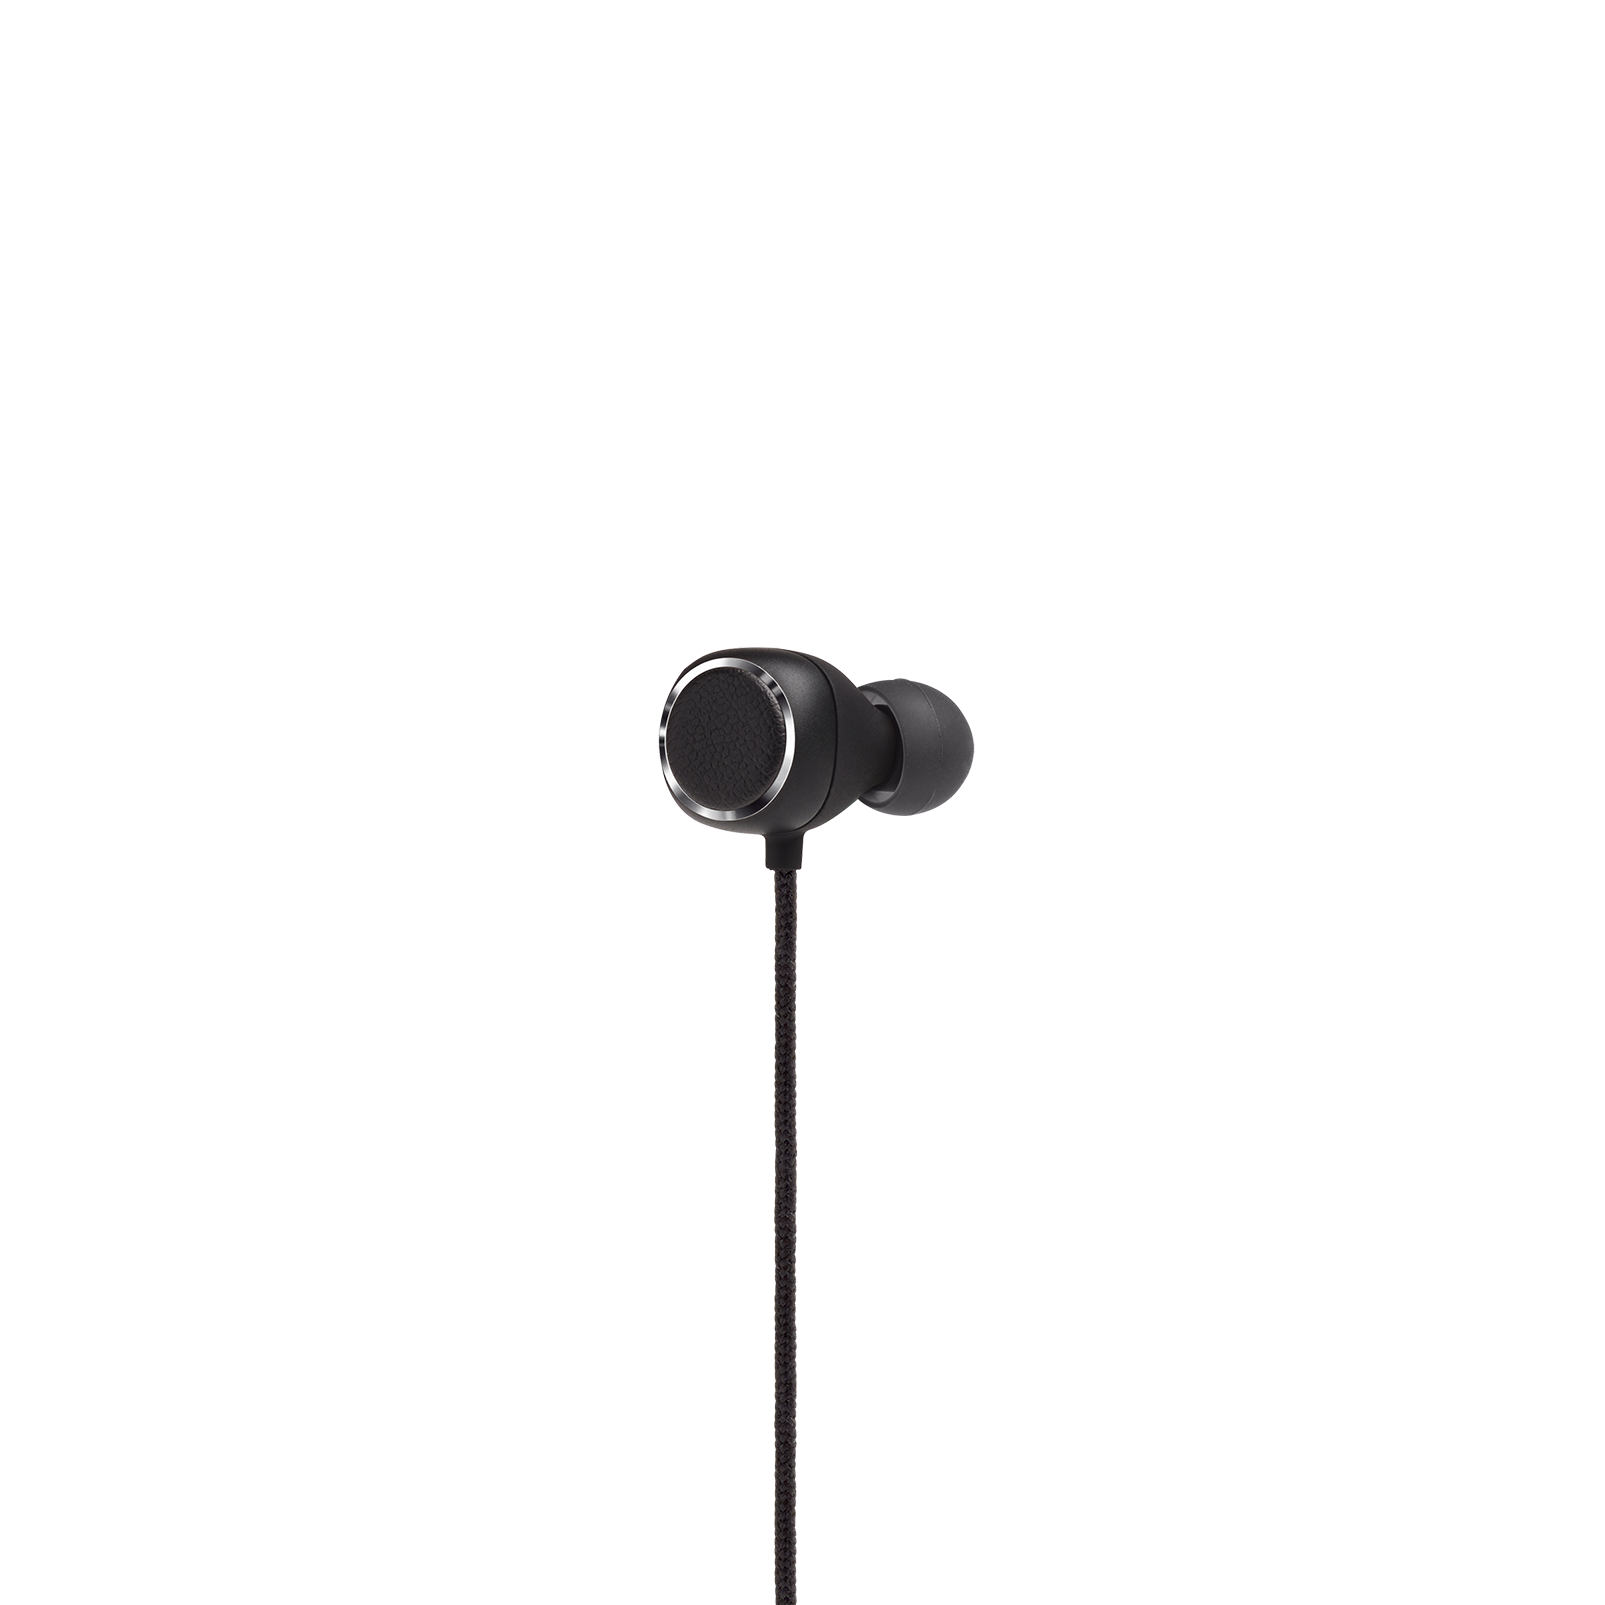 Harman Kardon FLY BT - Black - Bluetooth in-ear headphones - Back